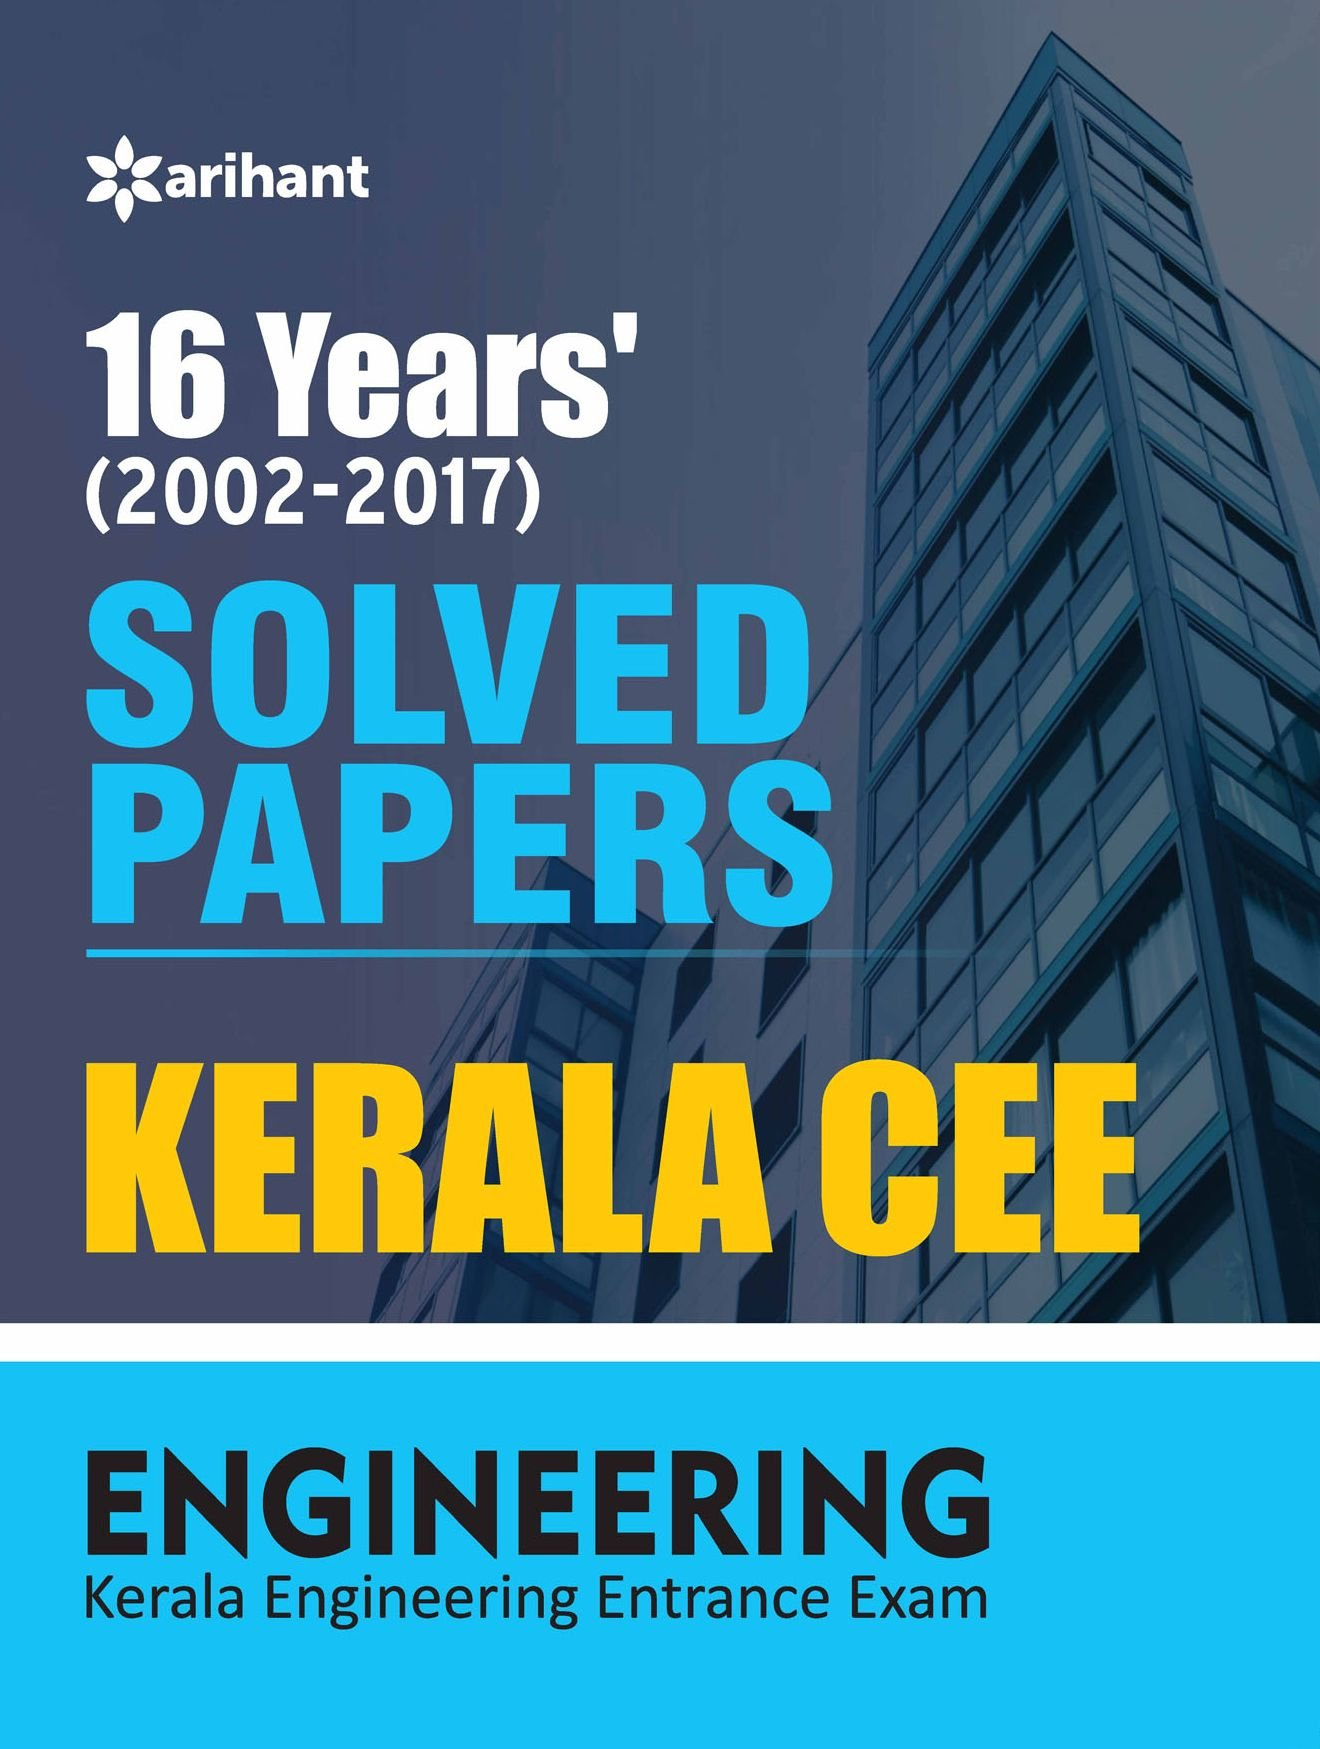 Buy 16 Year's Solved Papers Kerala CEE Engineering Entrance